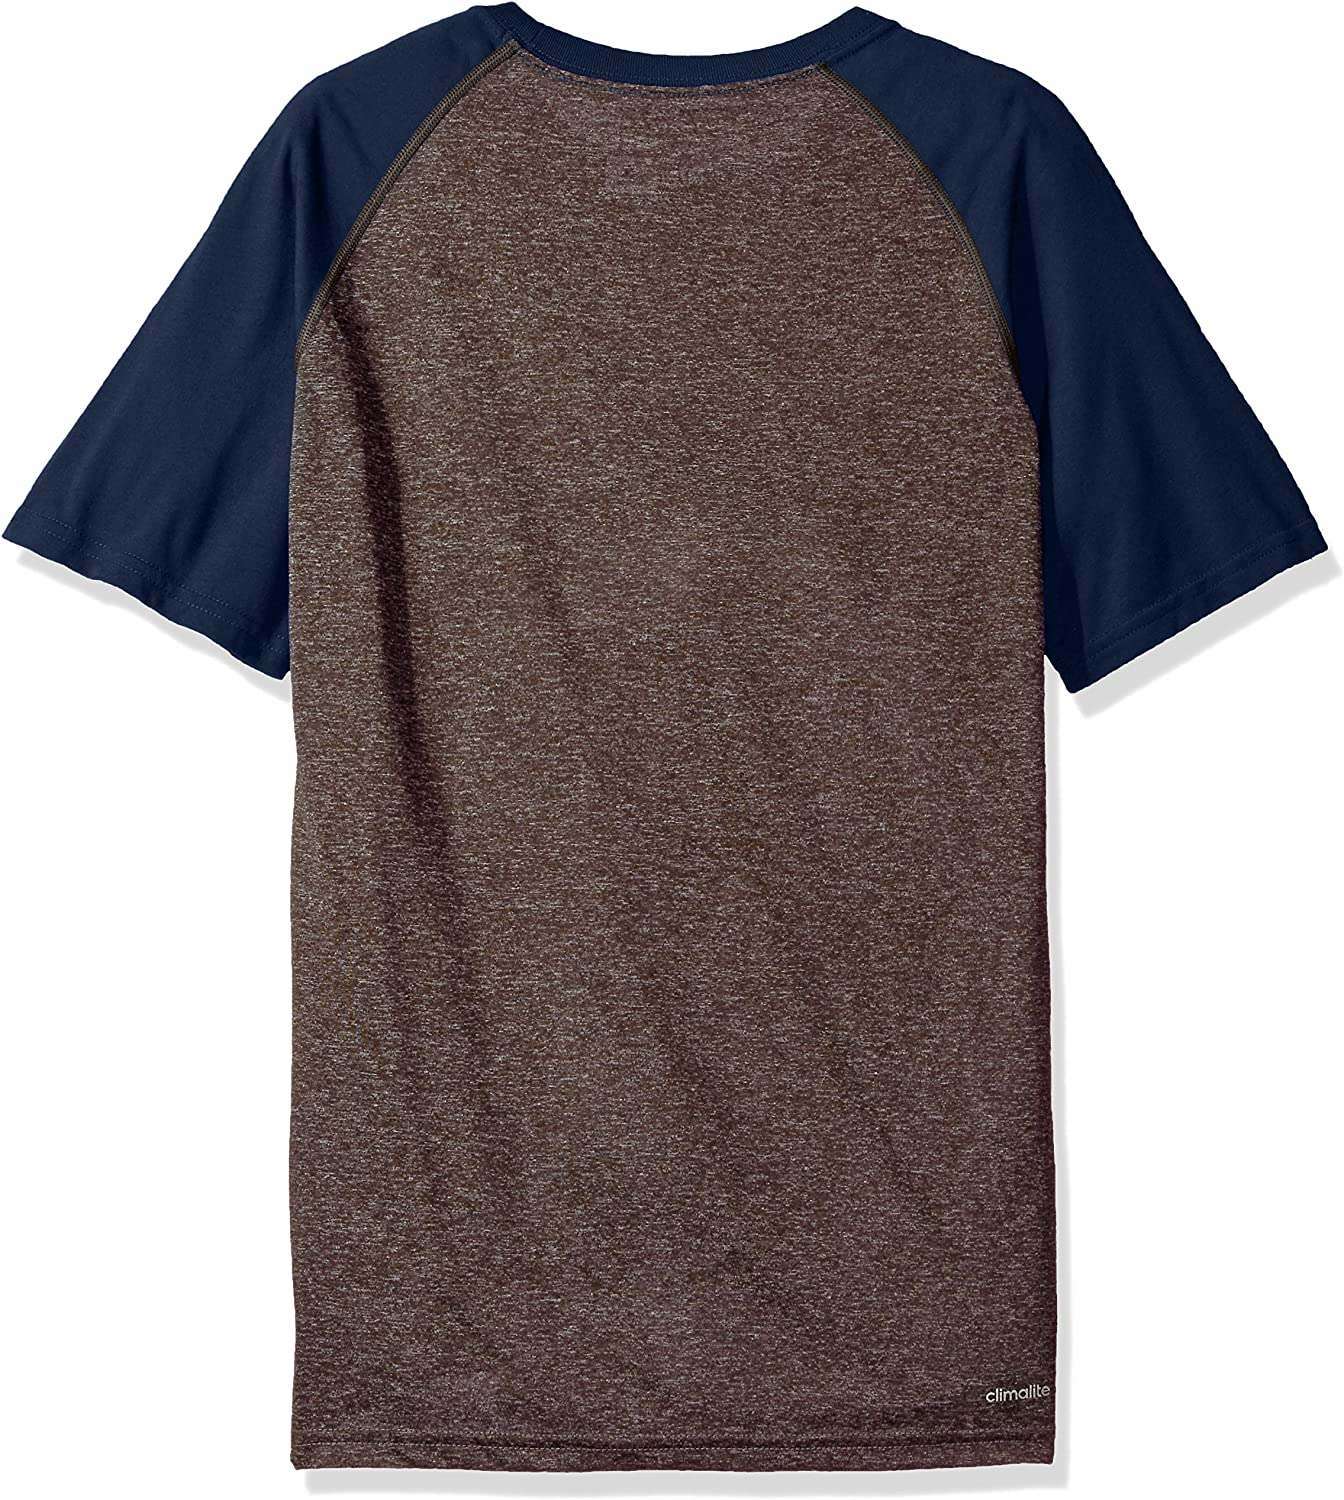 Dazzler Tactical Climate Ultimate S//Tee